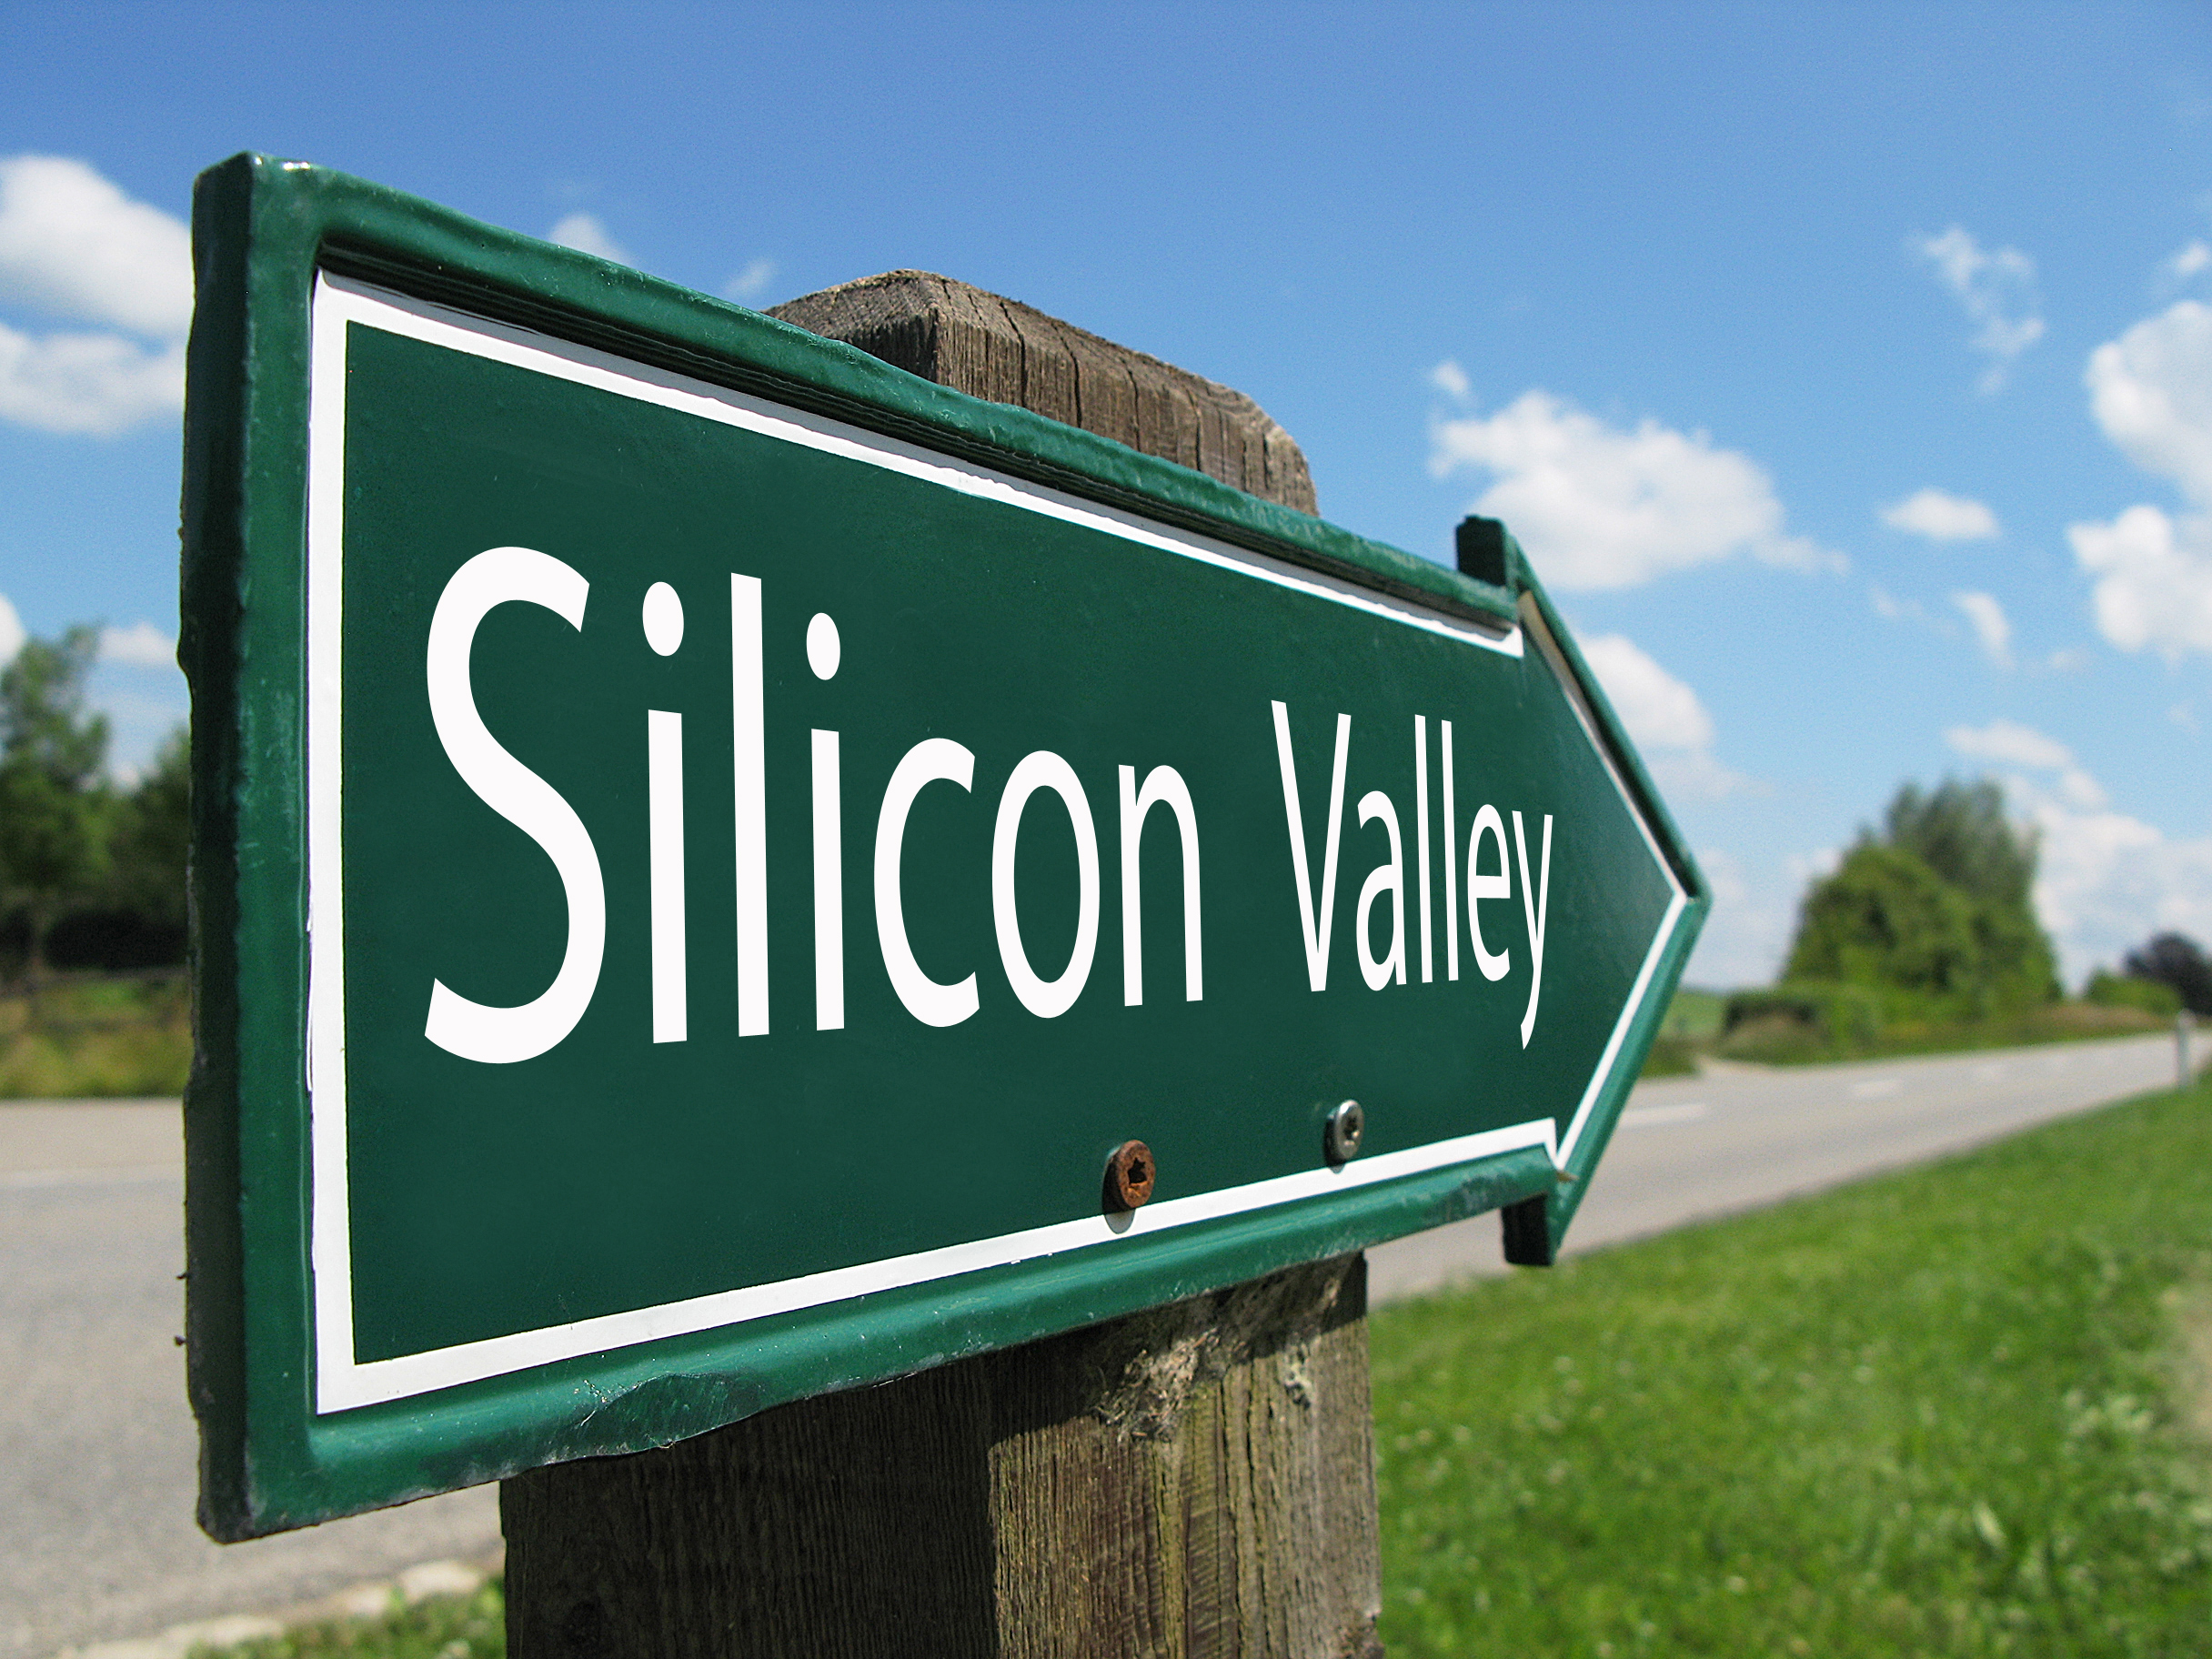 siliconvalley-blogart.jpg